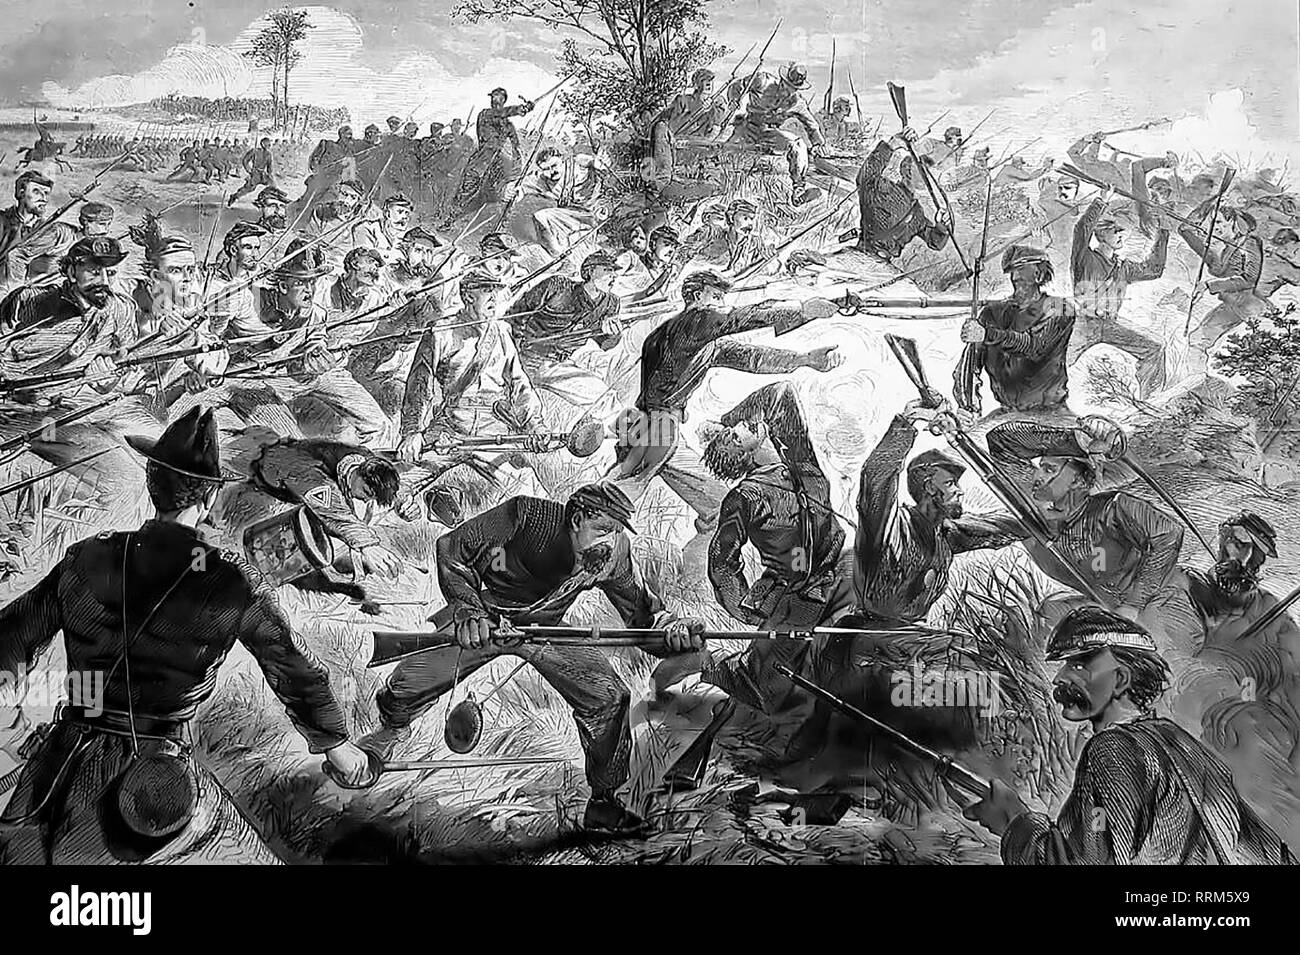 The War for the Union, 1862 - A Bayonet Charge - Stock Image